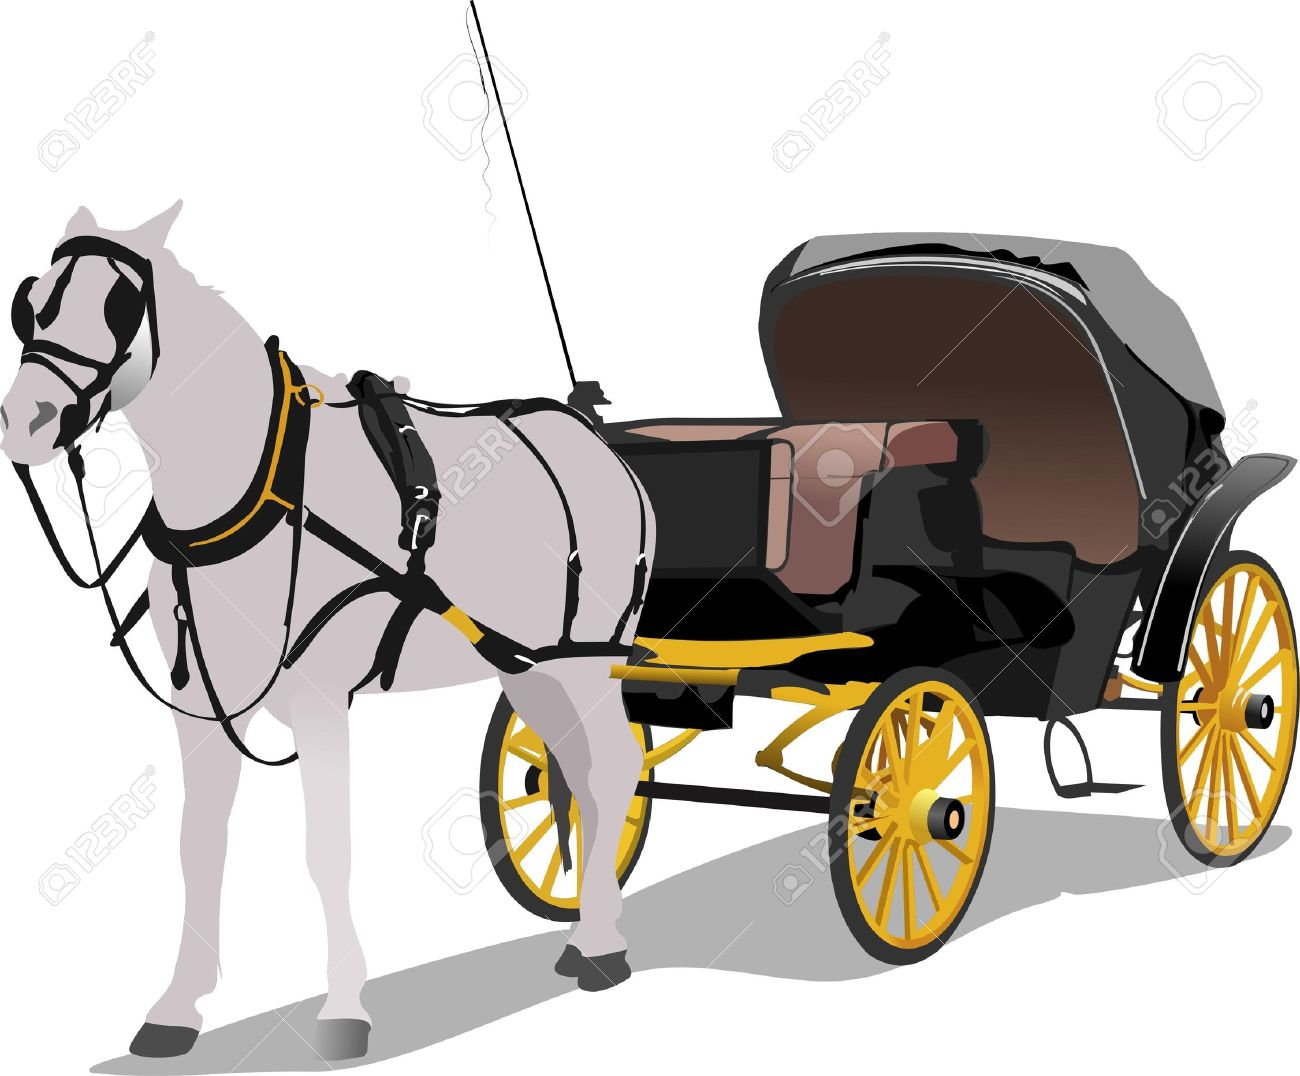 Horse Cart: Vintage Carriage And Horse Vector Illustration